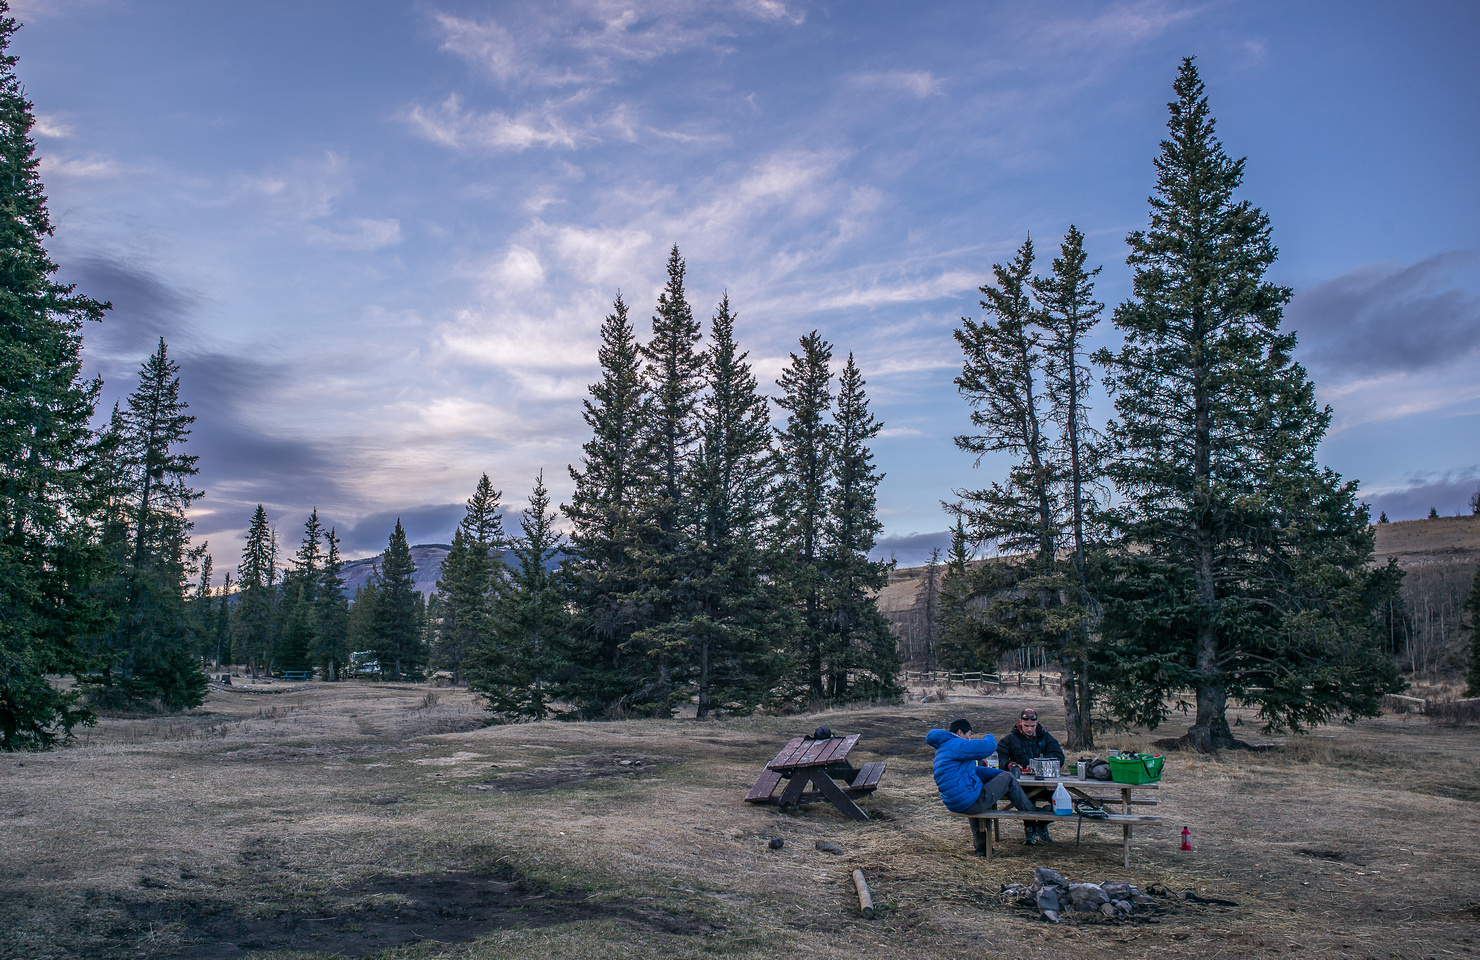 The Bighorn Campground isn't fancy but it works and it's free.